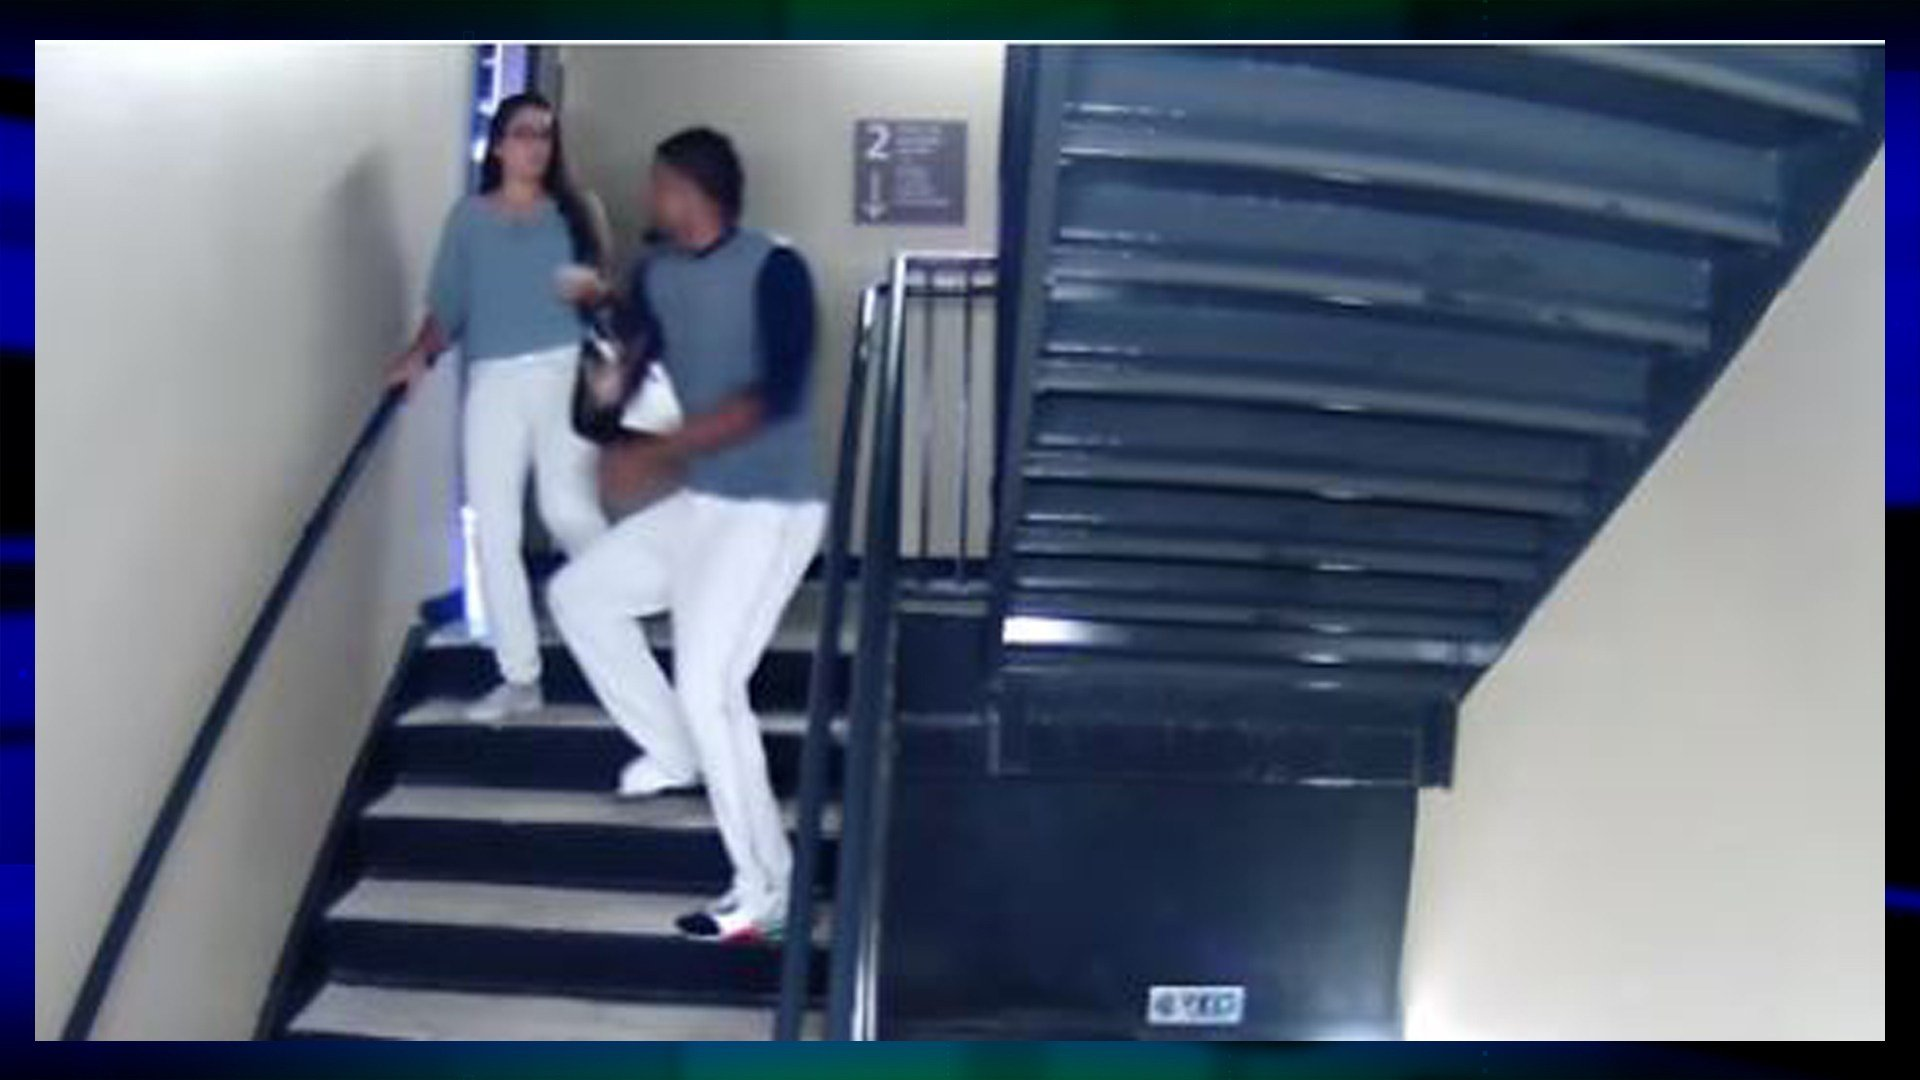 Caught on Camera: Former Astros prospect seen brutally assaulting fiancee